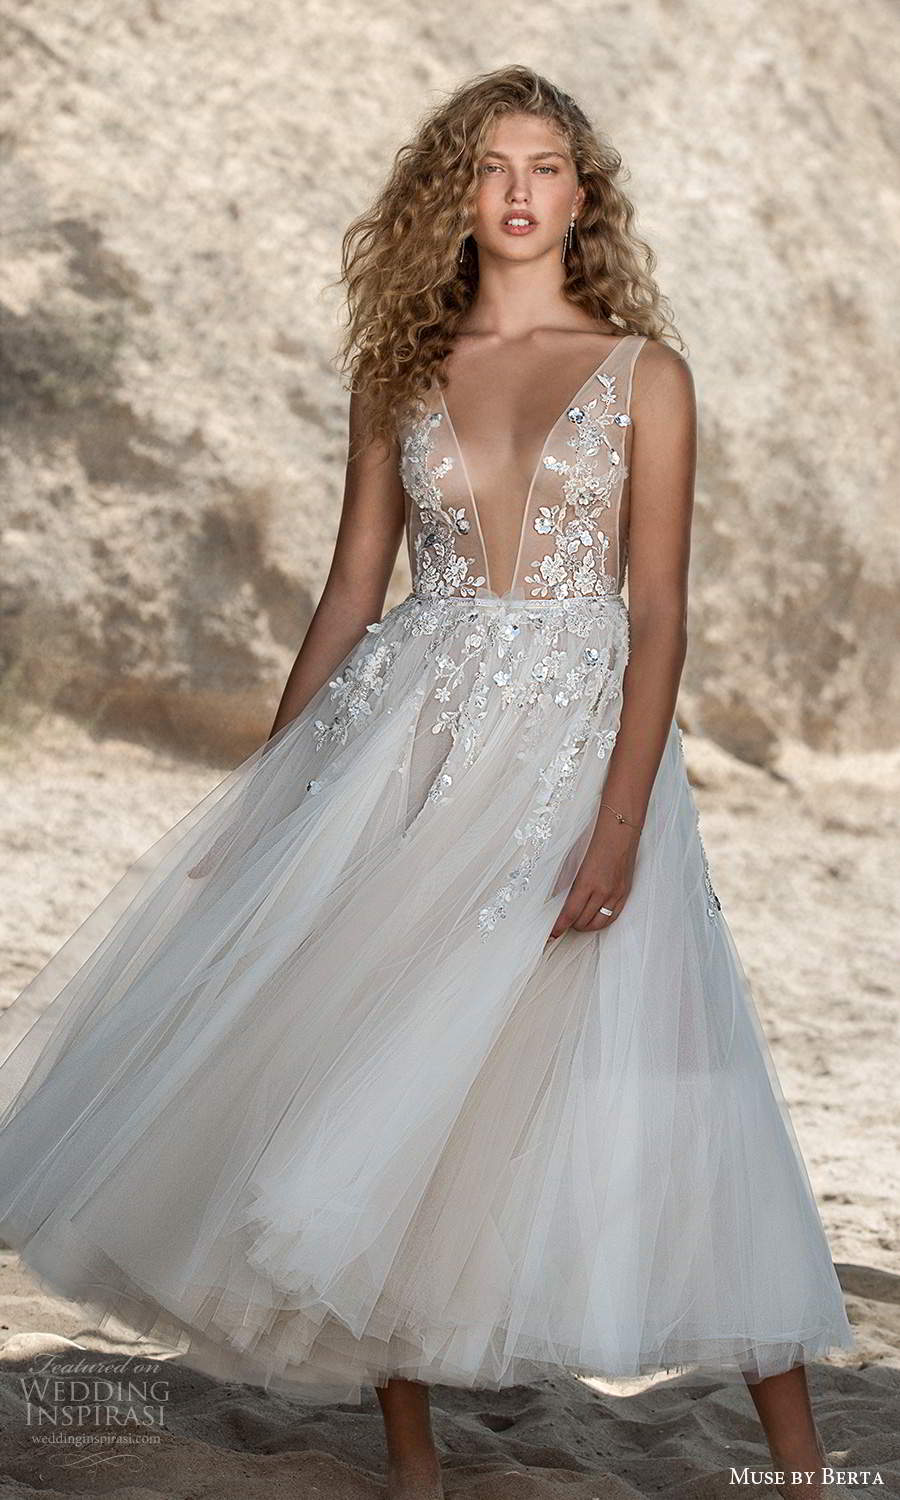 muse by berta fall 2021 bridal sleeveless thick straps plunging v neckline side cutout sheer embellished bodice a line ball gown tea length wedding dress (6) mv